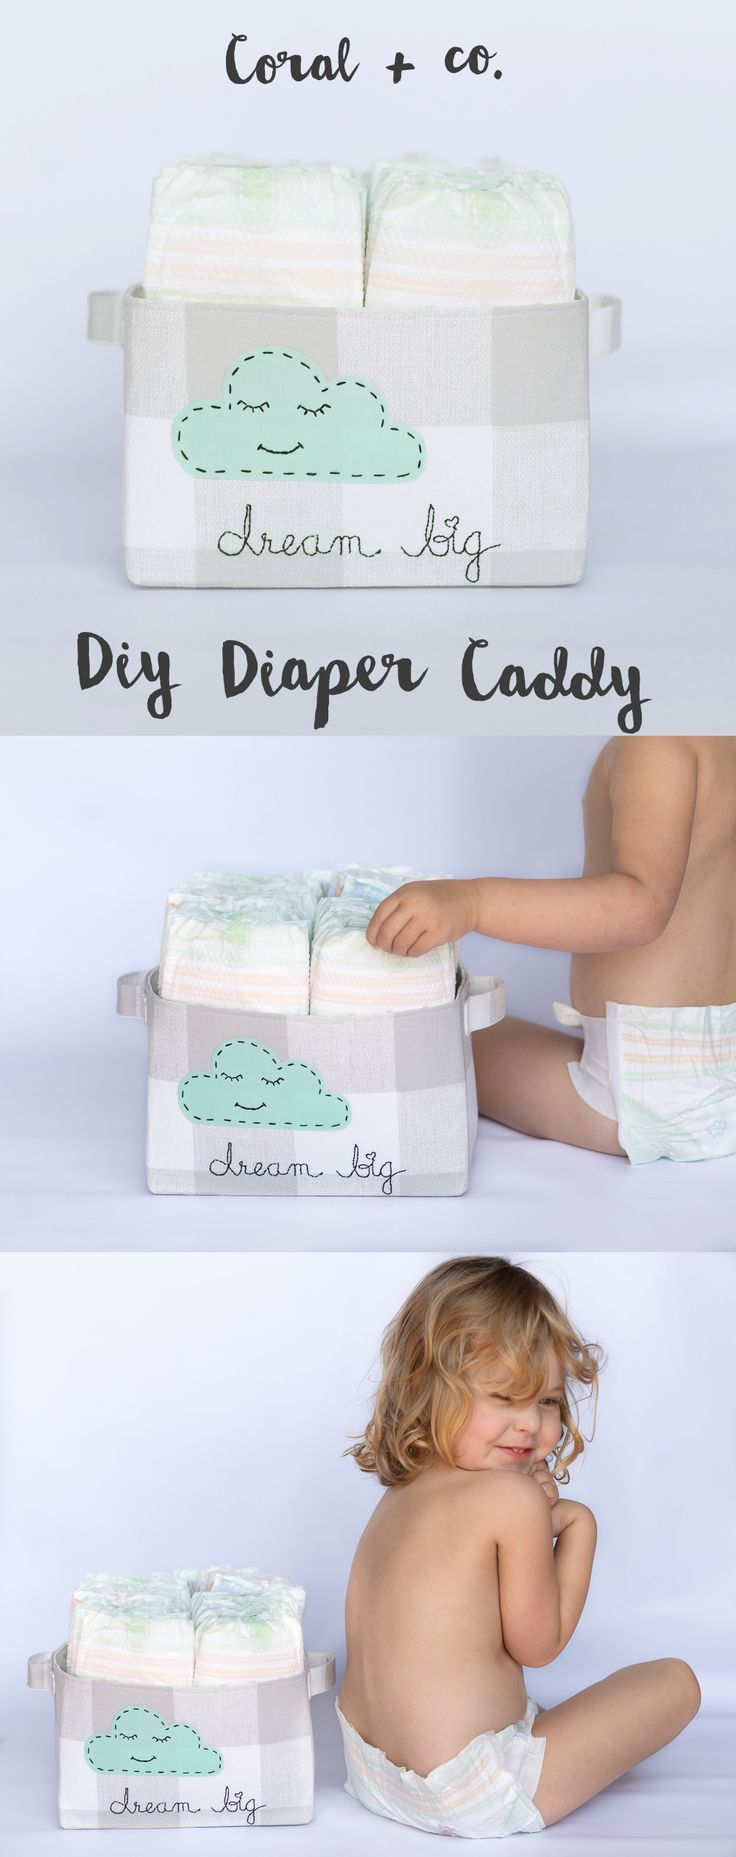 DIY Fabric Basket Tutorial.  Make your own Diaper Caddy Tutorial with a embroidered cloud.